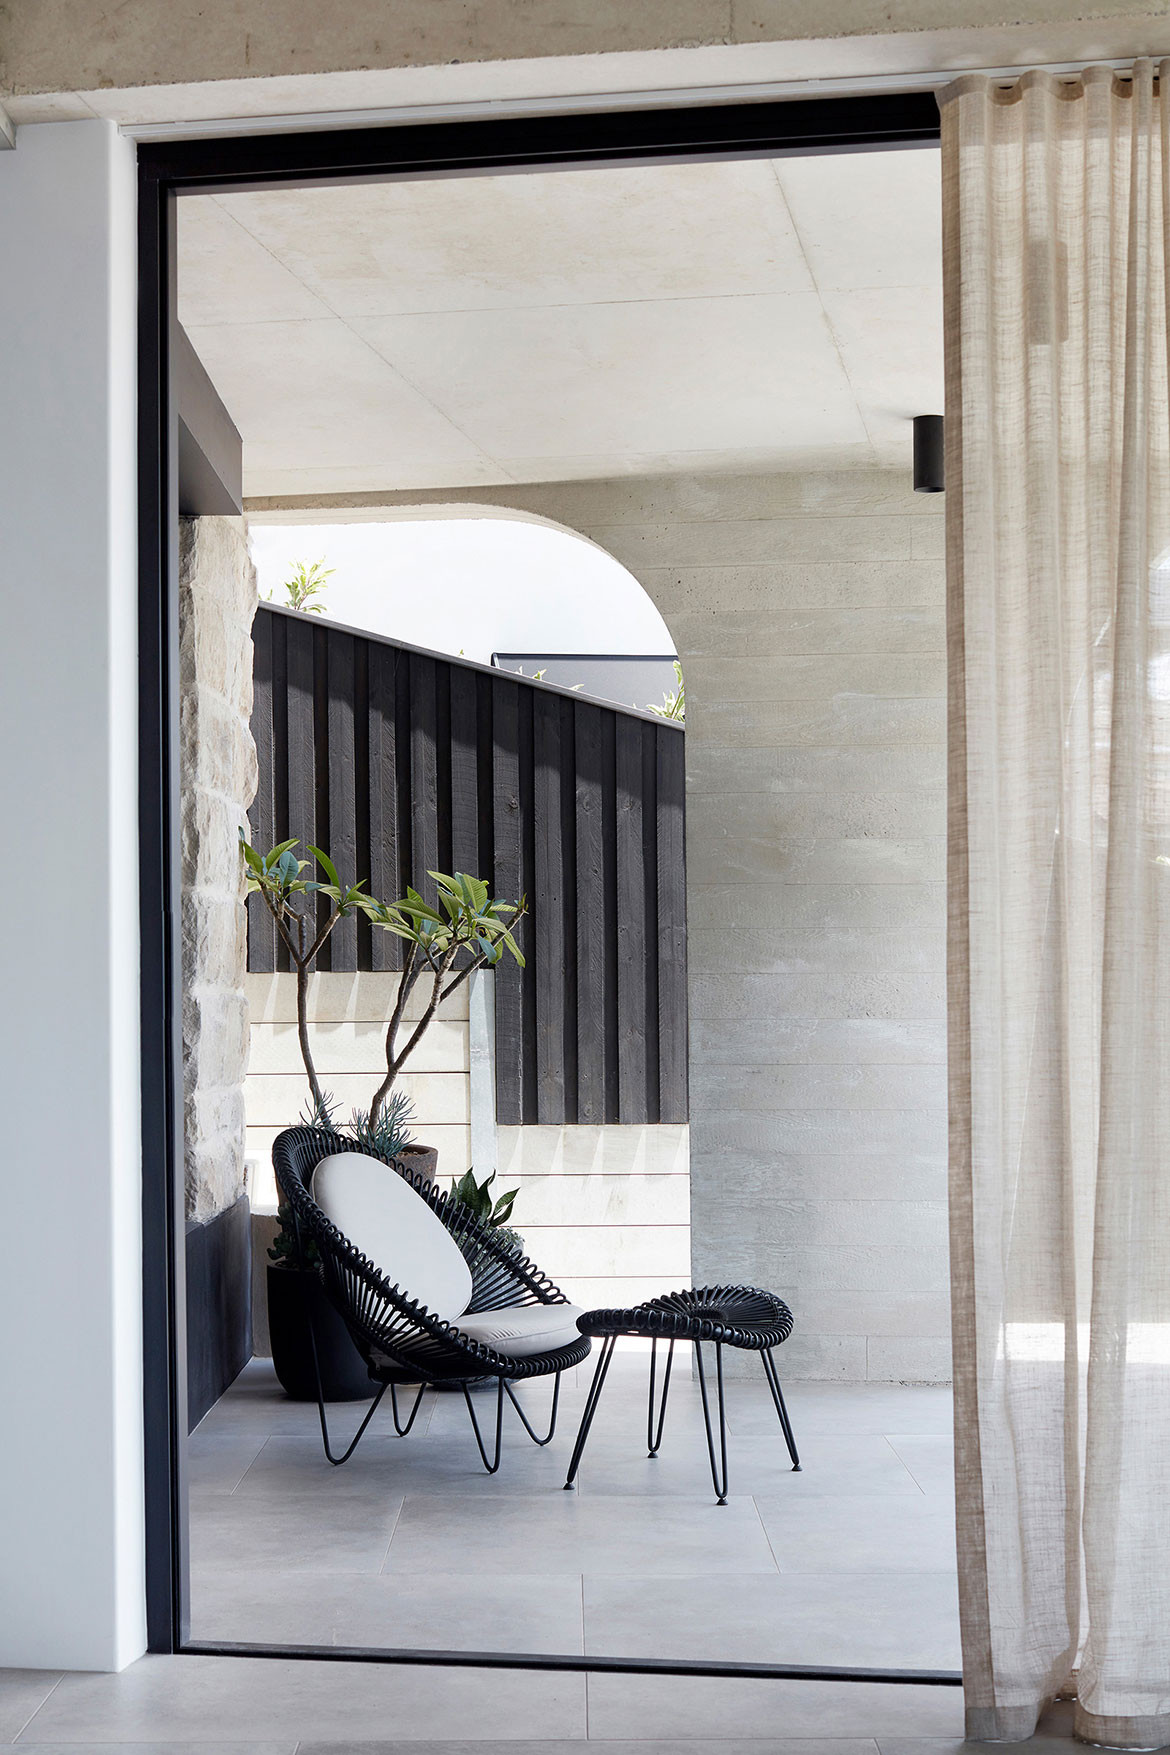 Tamas Tee House Luigi Rosselli Architects lounge chair